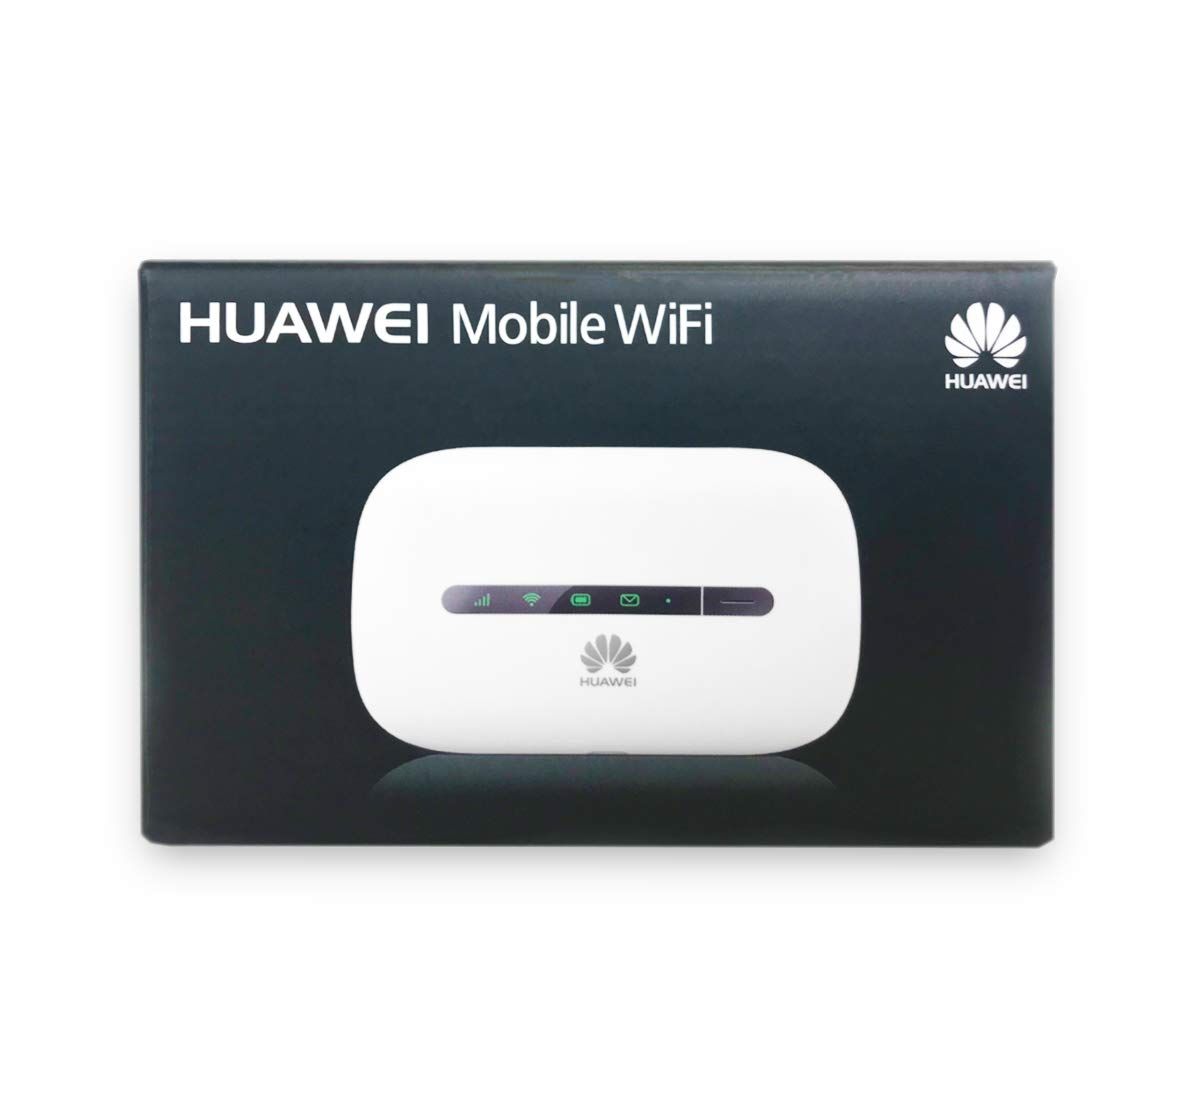 Amazon.com: Huawei e5330bs-2, Blanco: MOBILE ASSISTANT